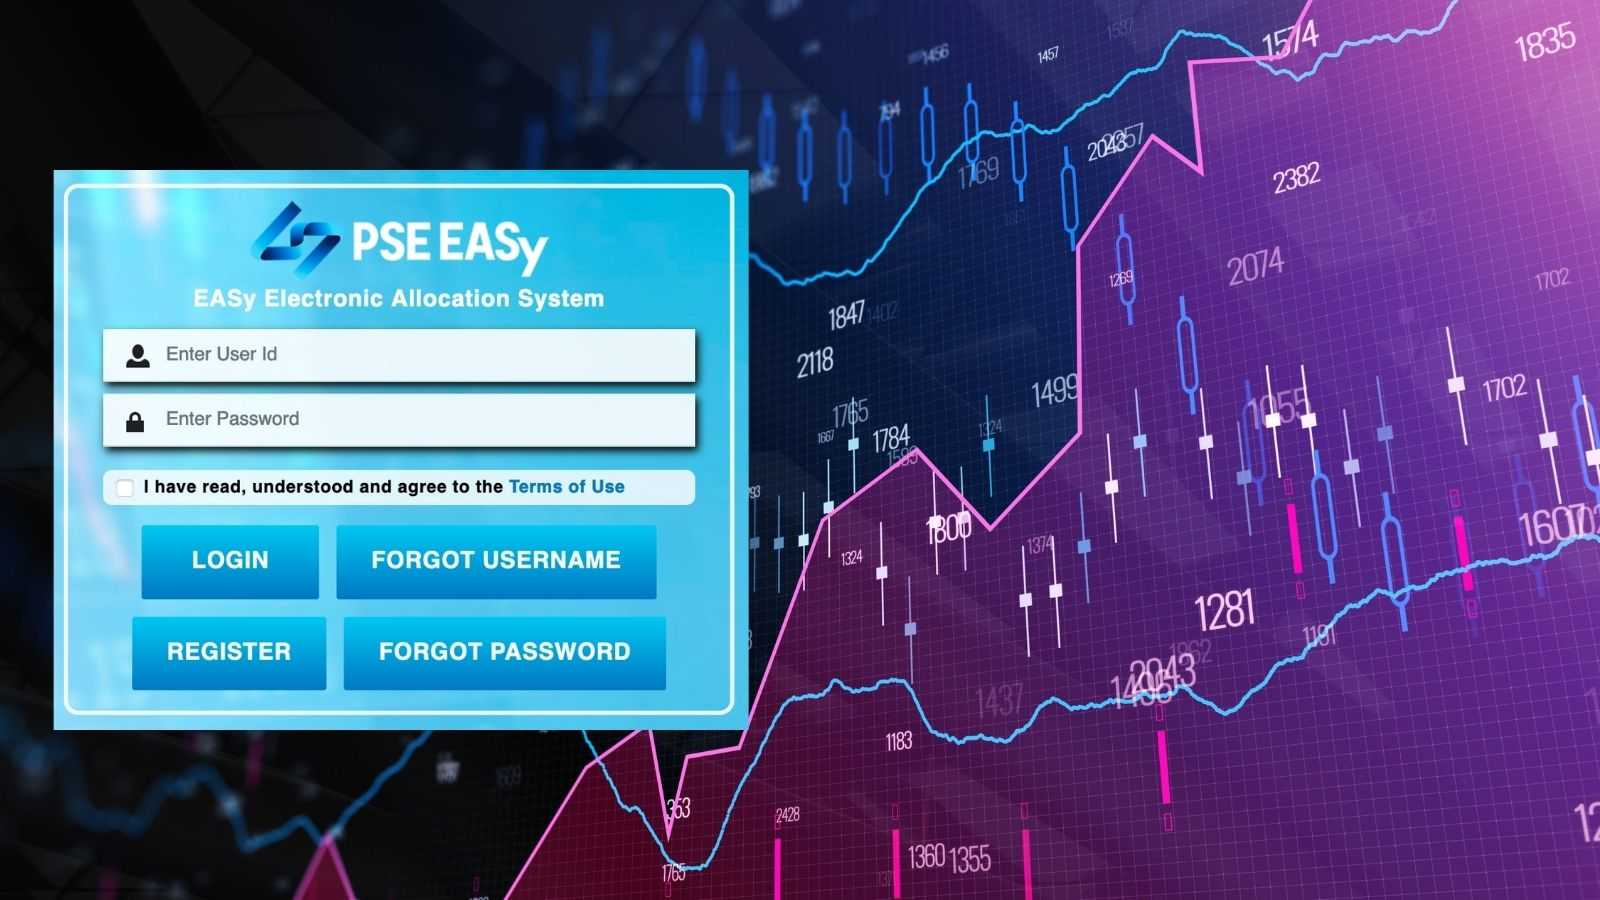 how to open pse easy account for ipo